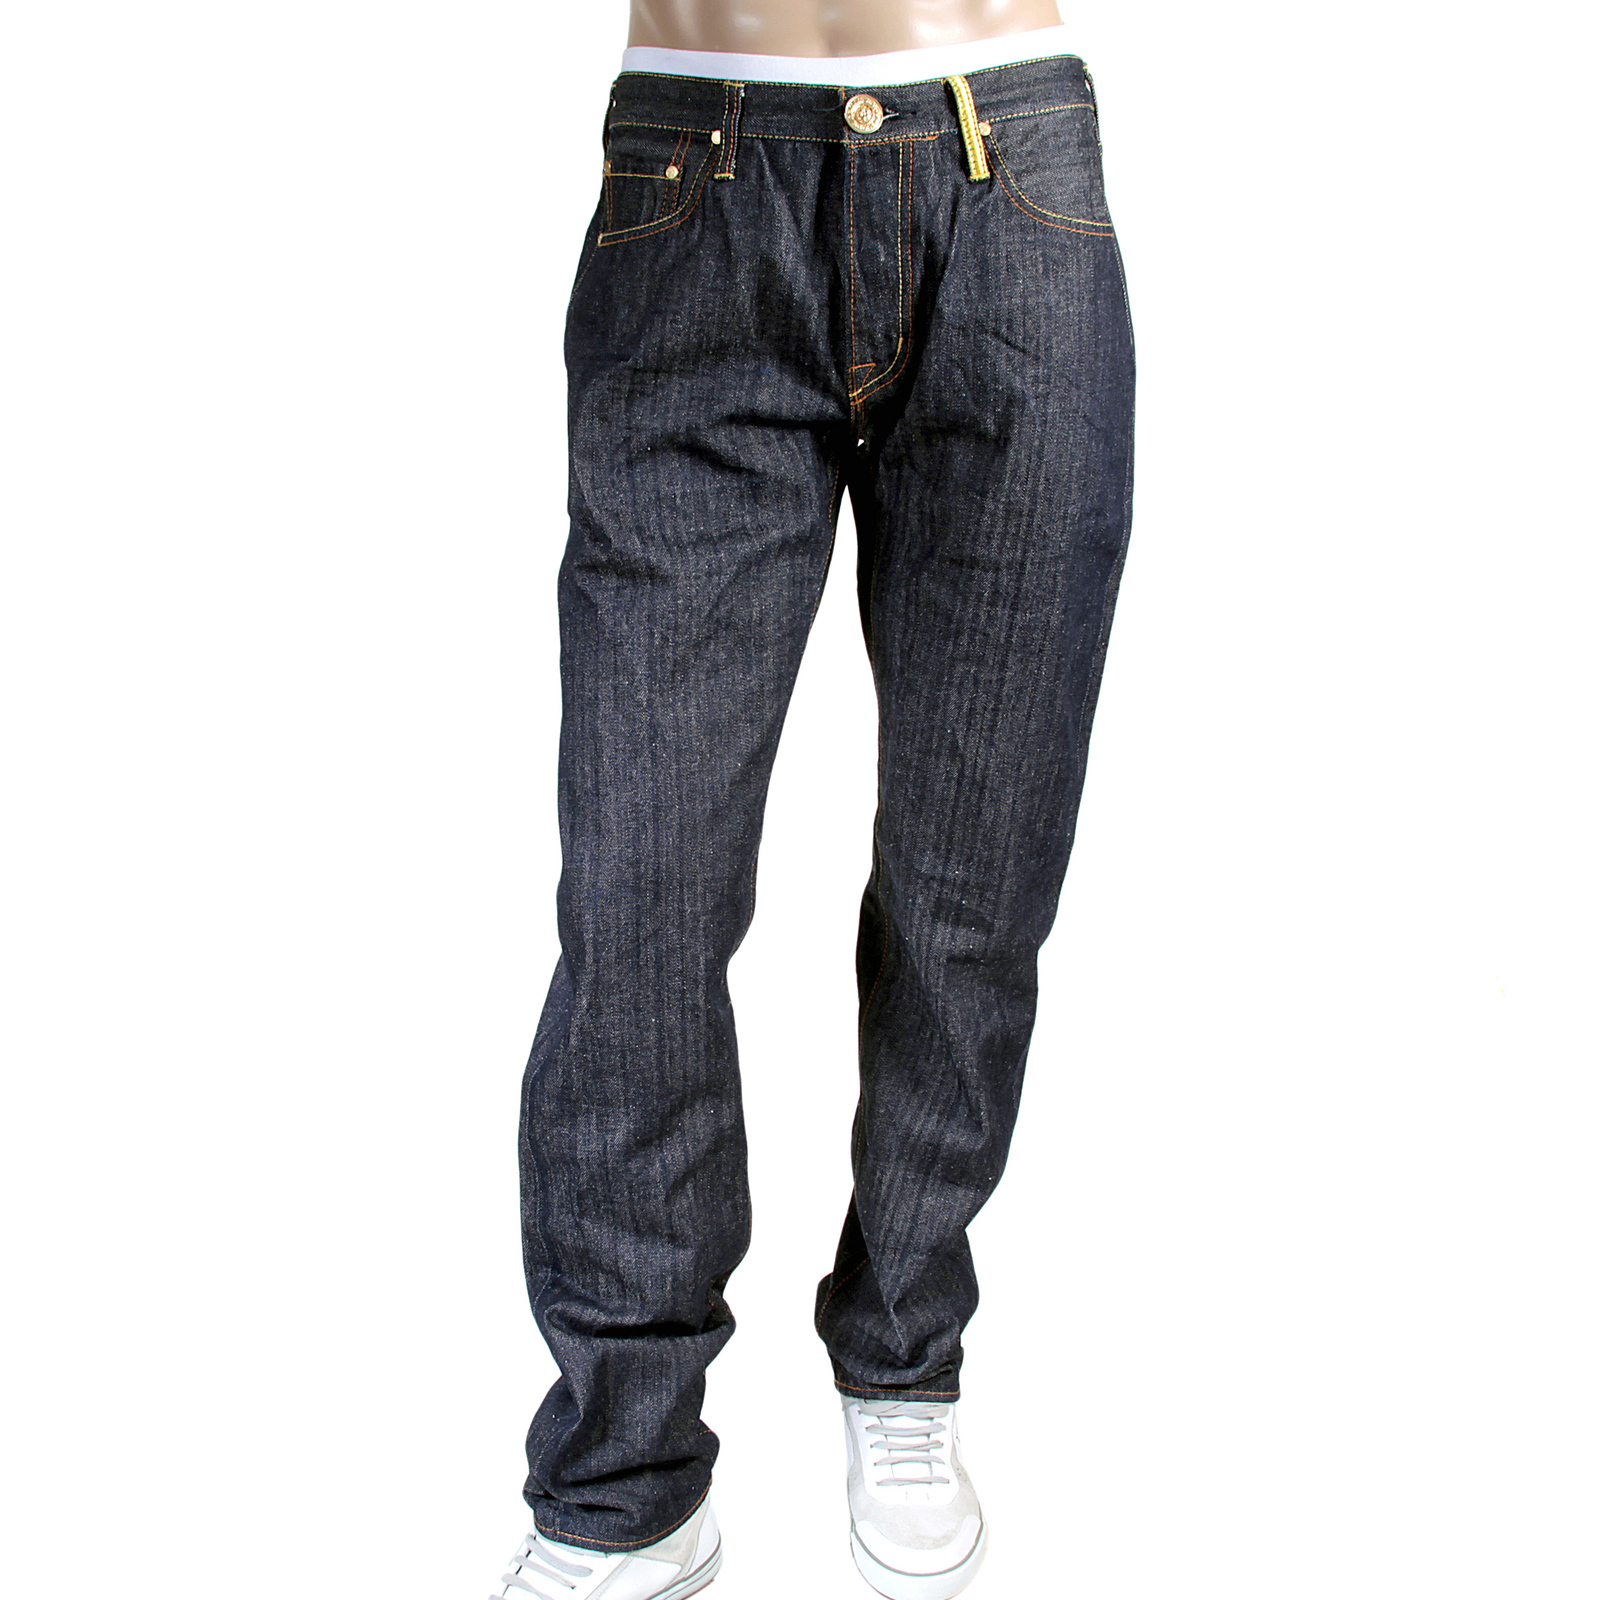 RMC Monster Rider Embroidered Raw Selvedge Denim Jeans